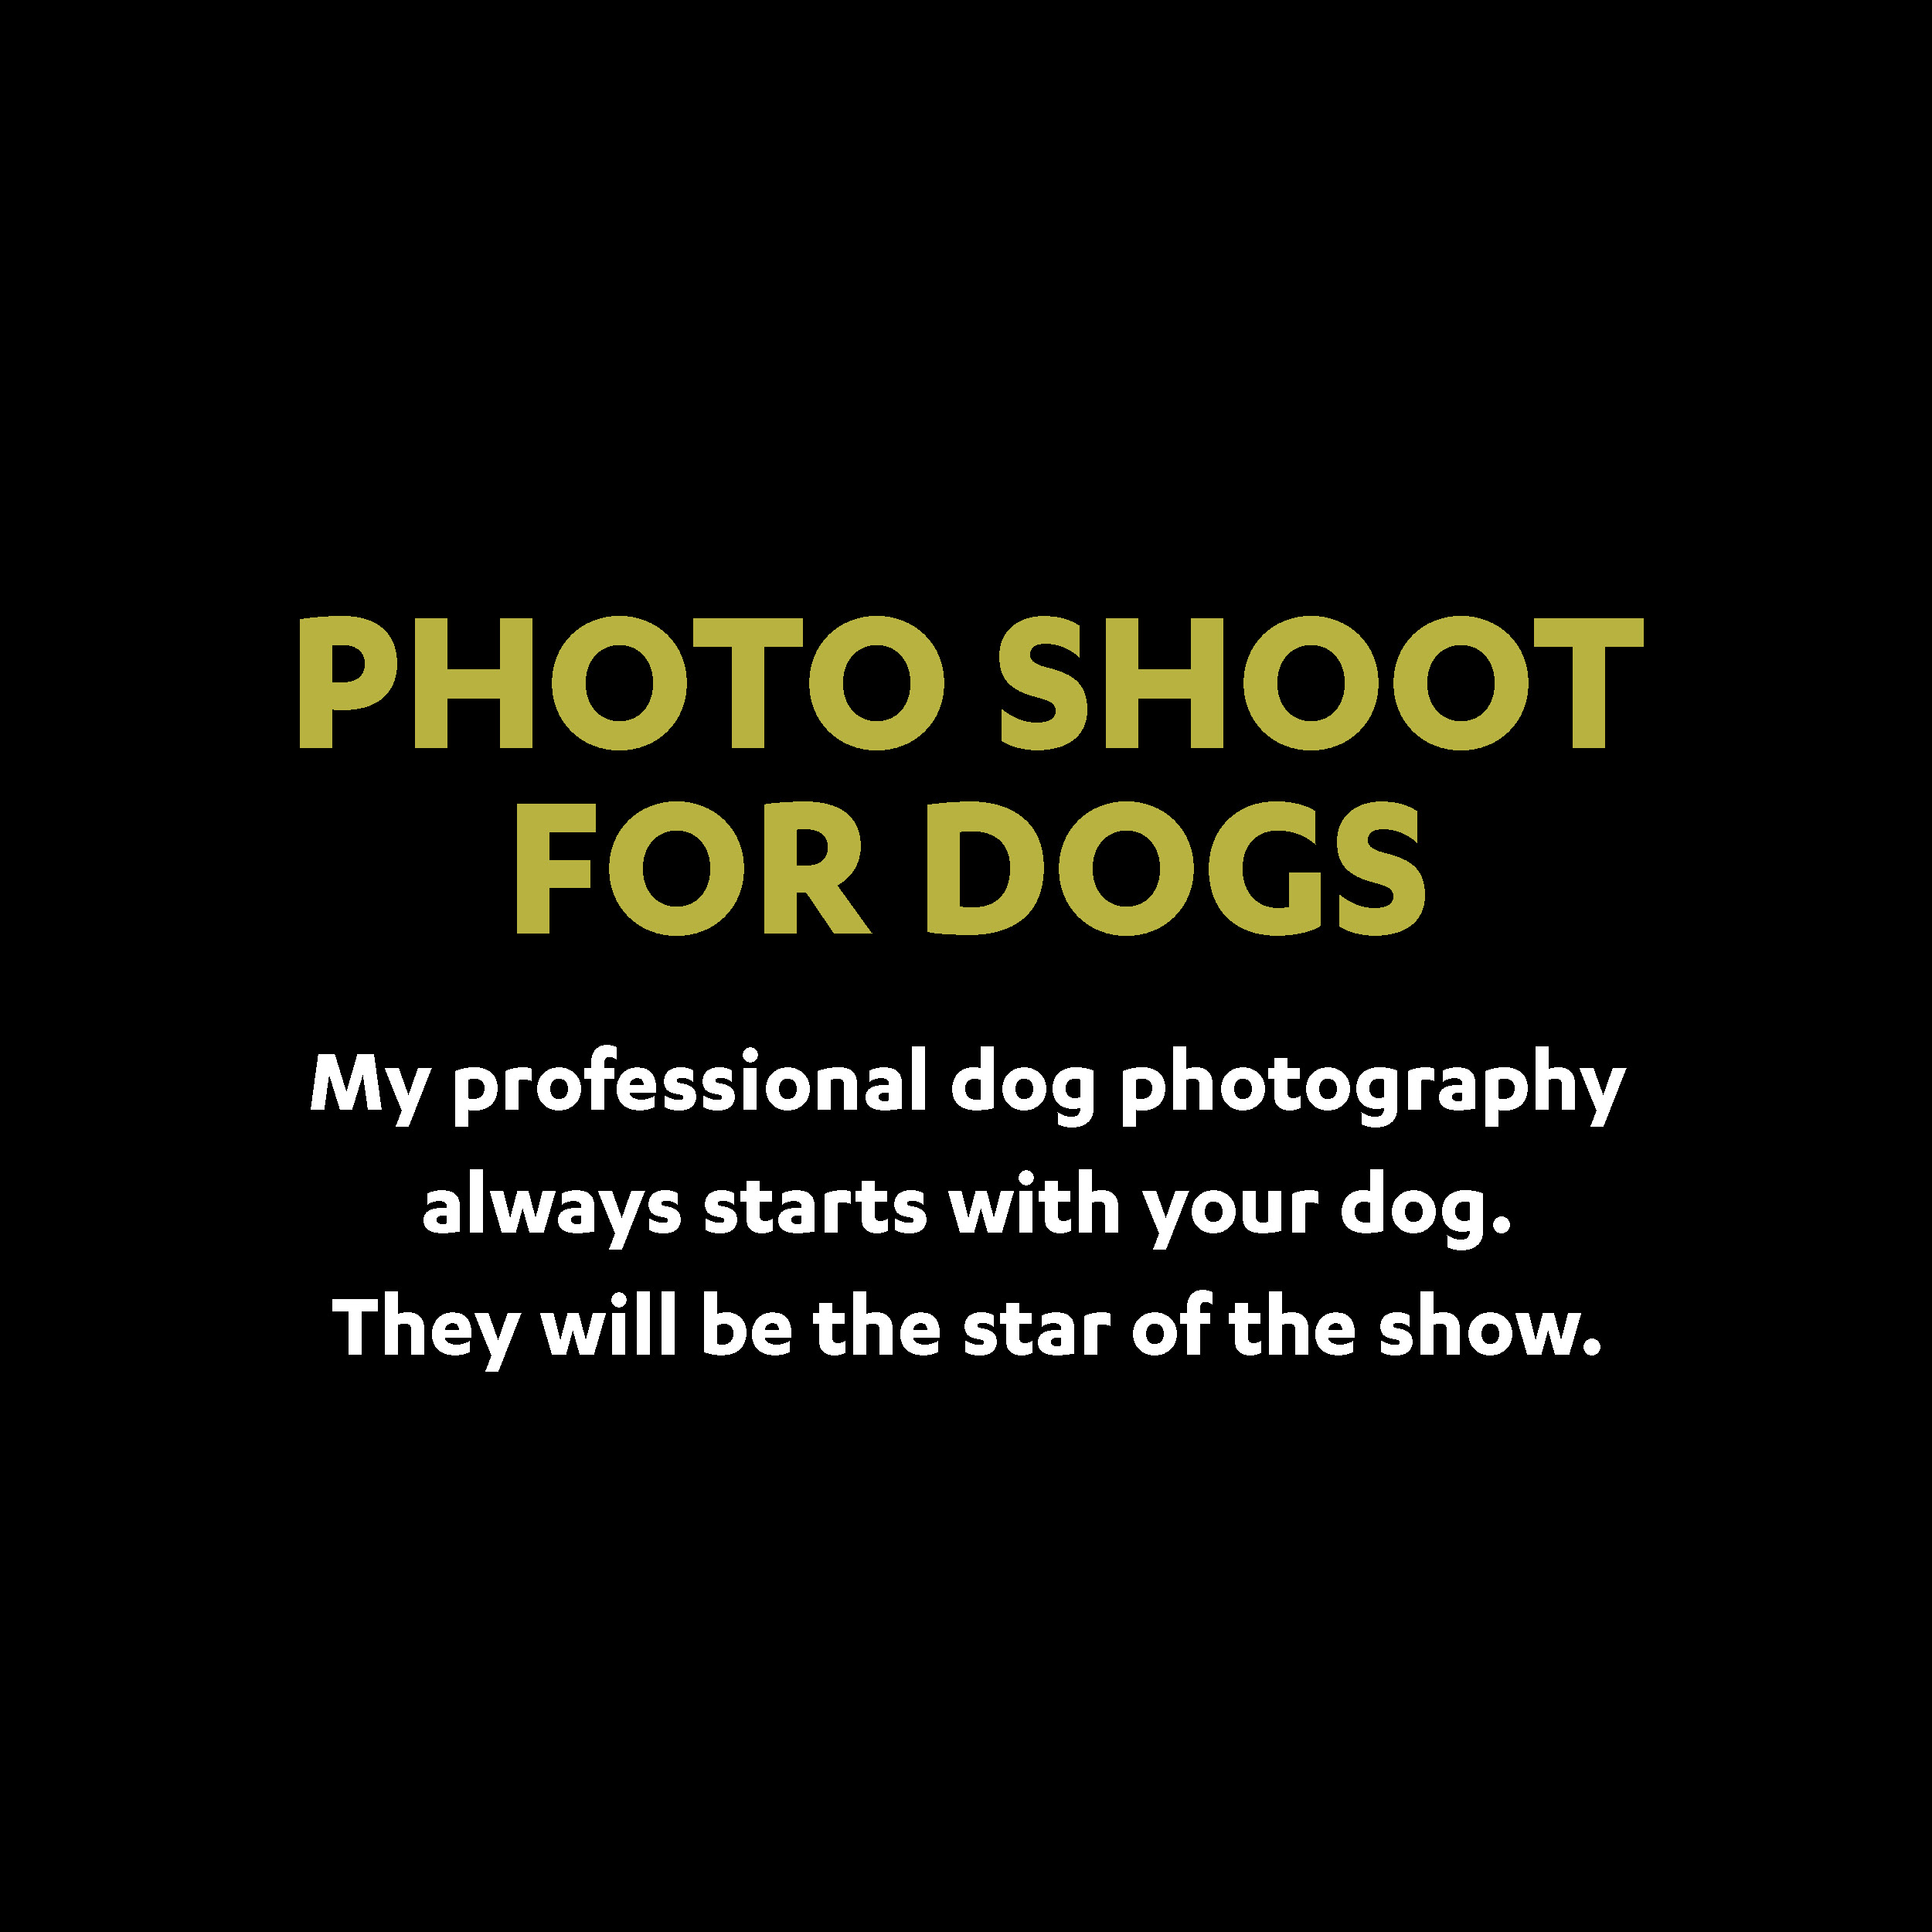 photo shoots for dogs.jpg